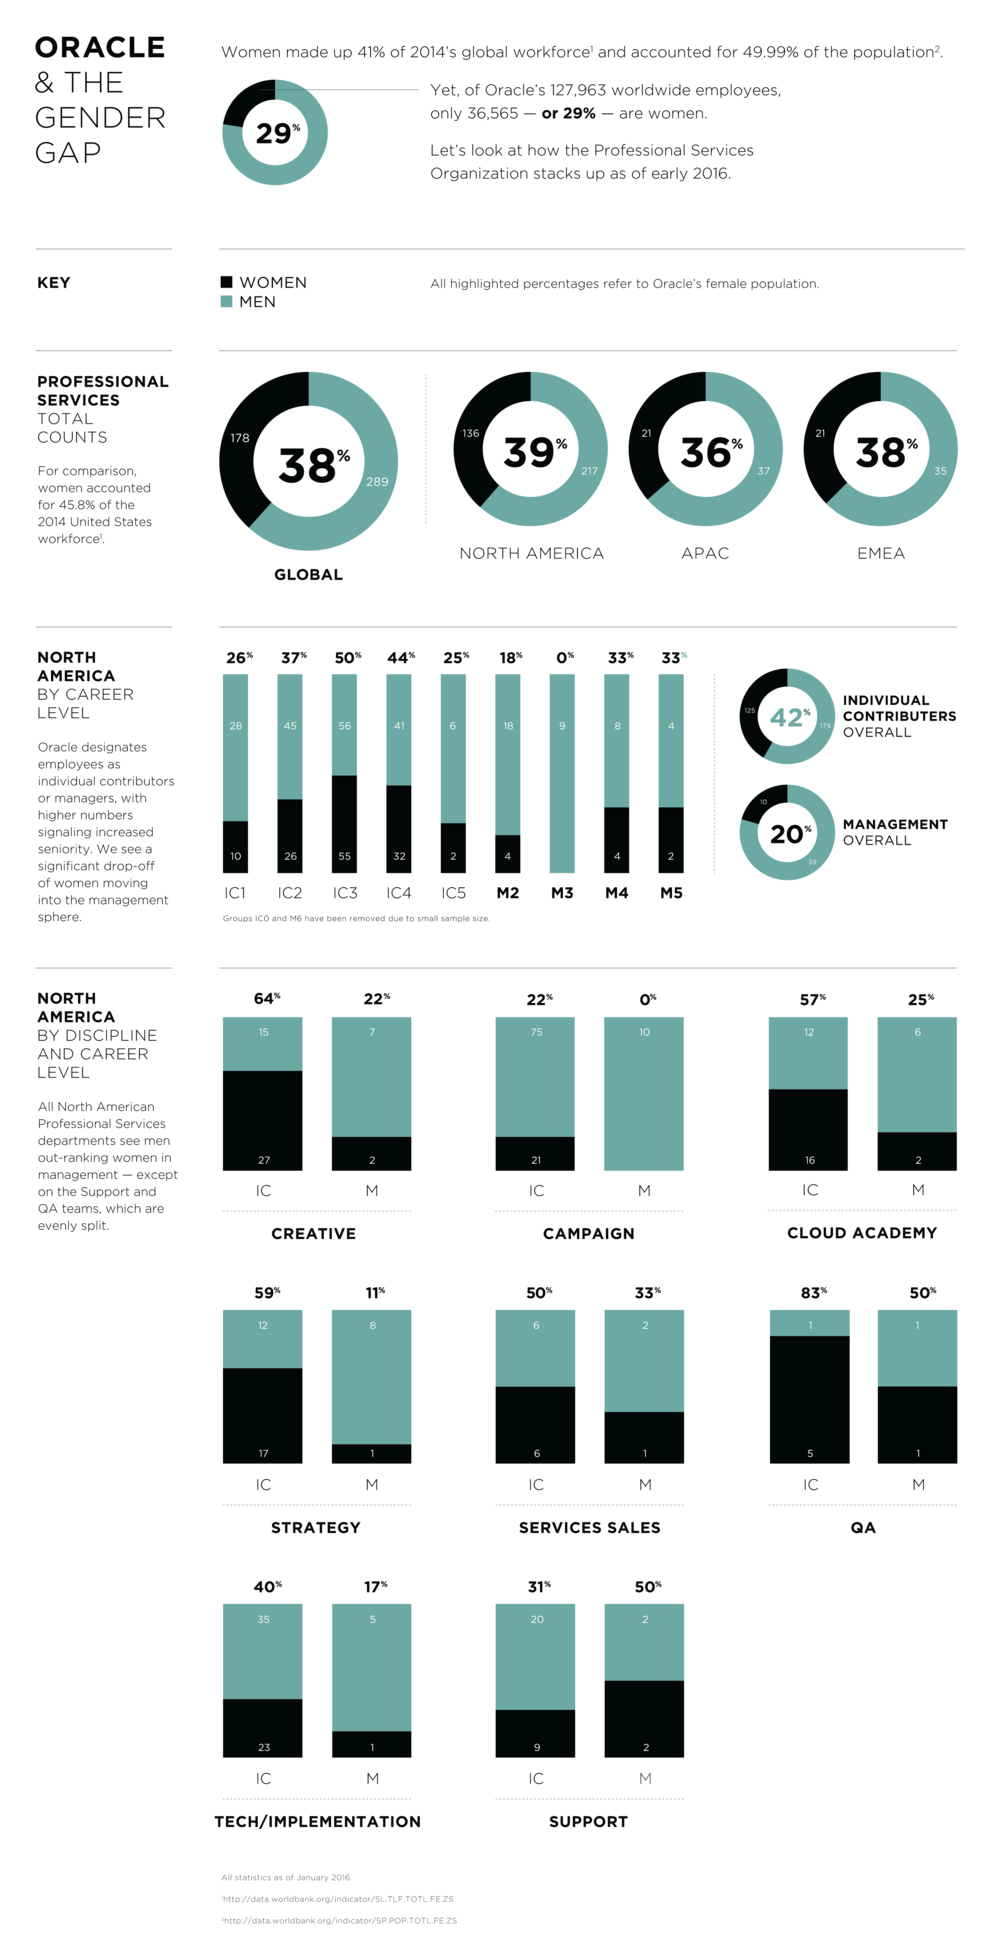 OracleInfographic_GenderBreakdown_Final0209.png